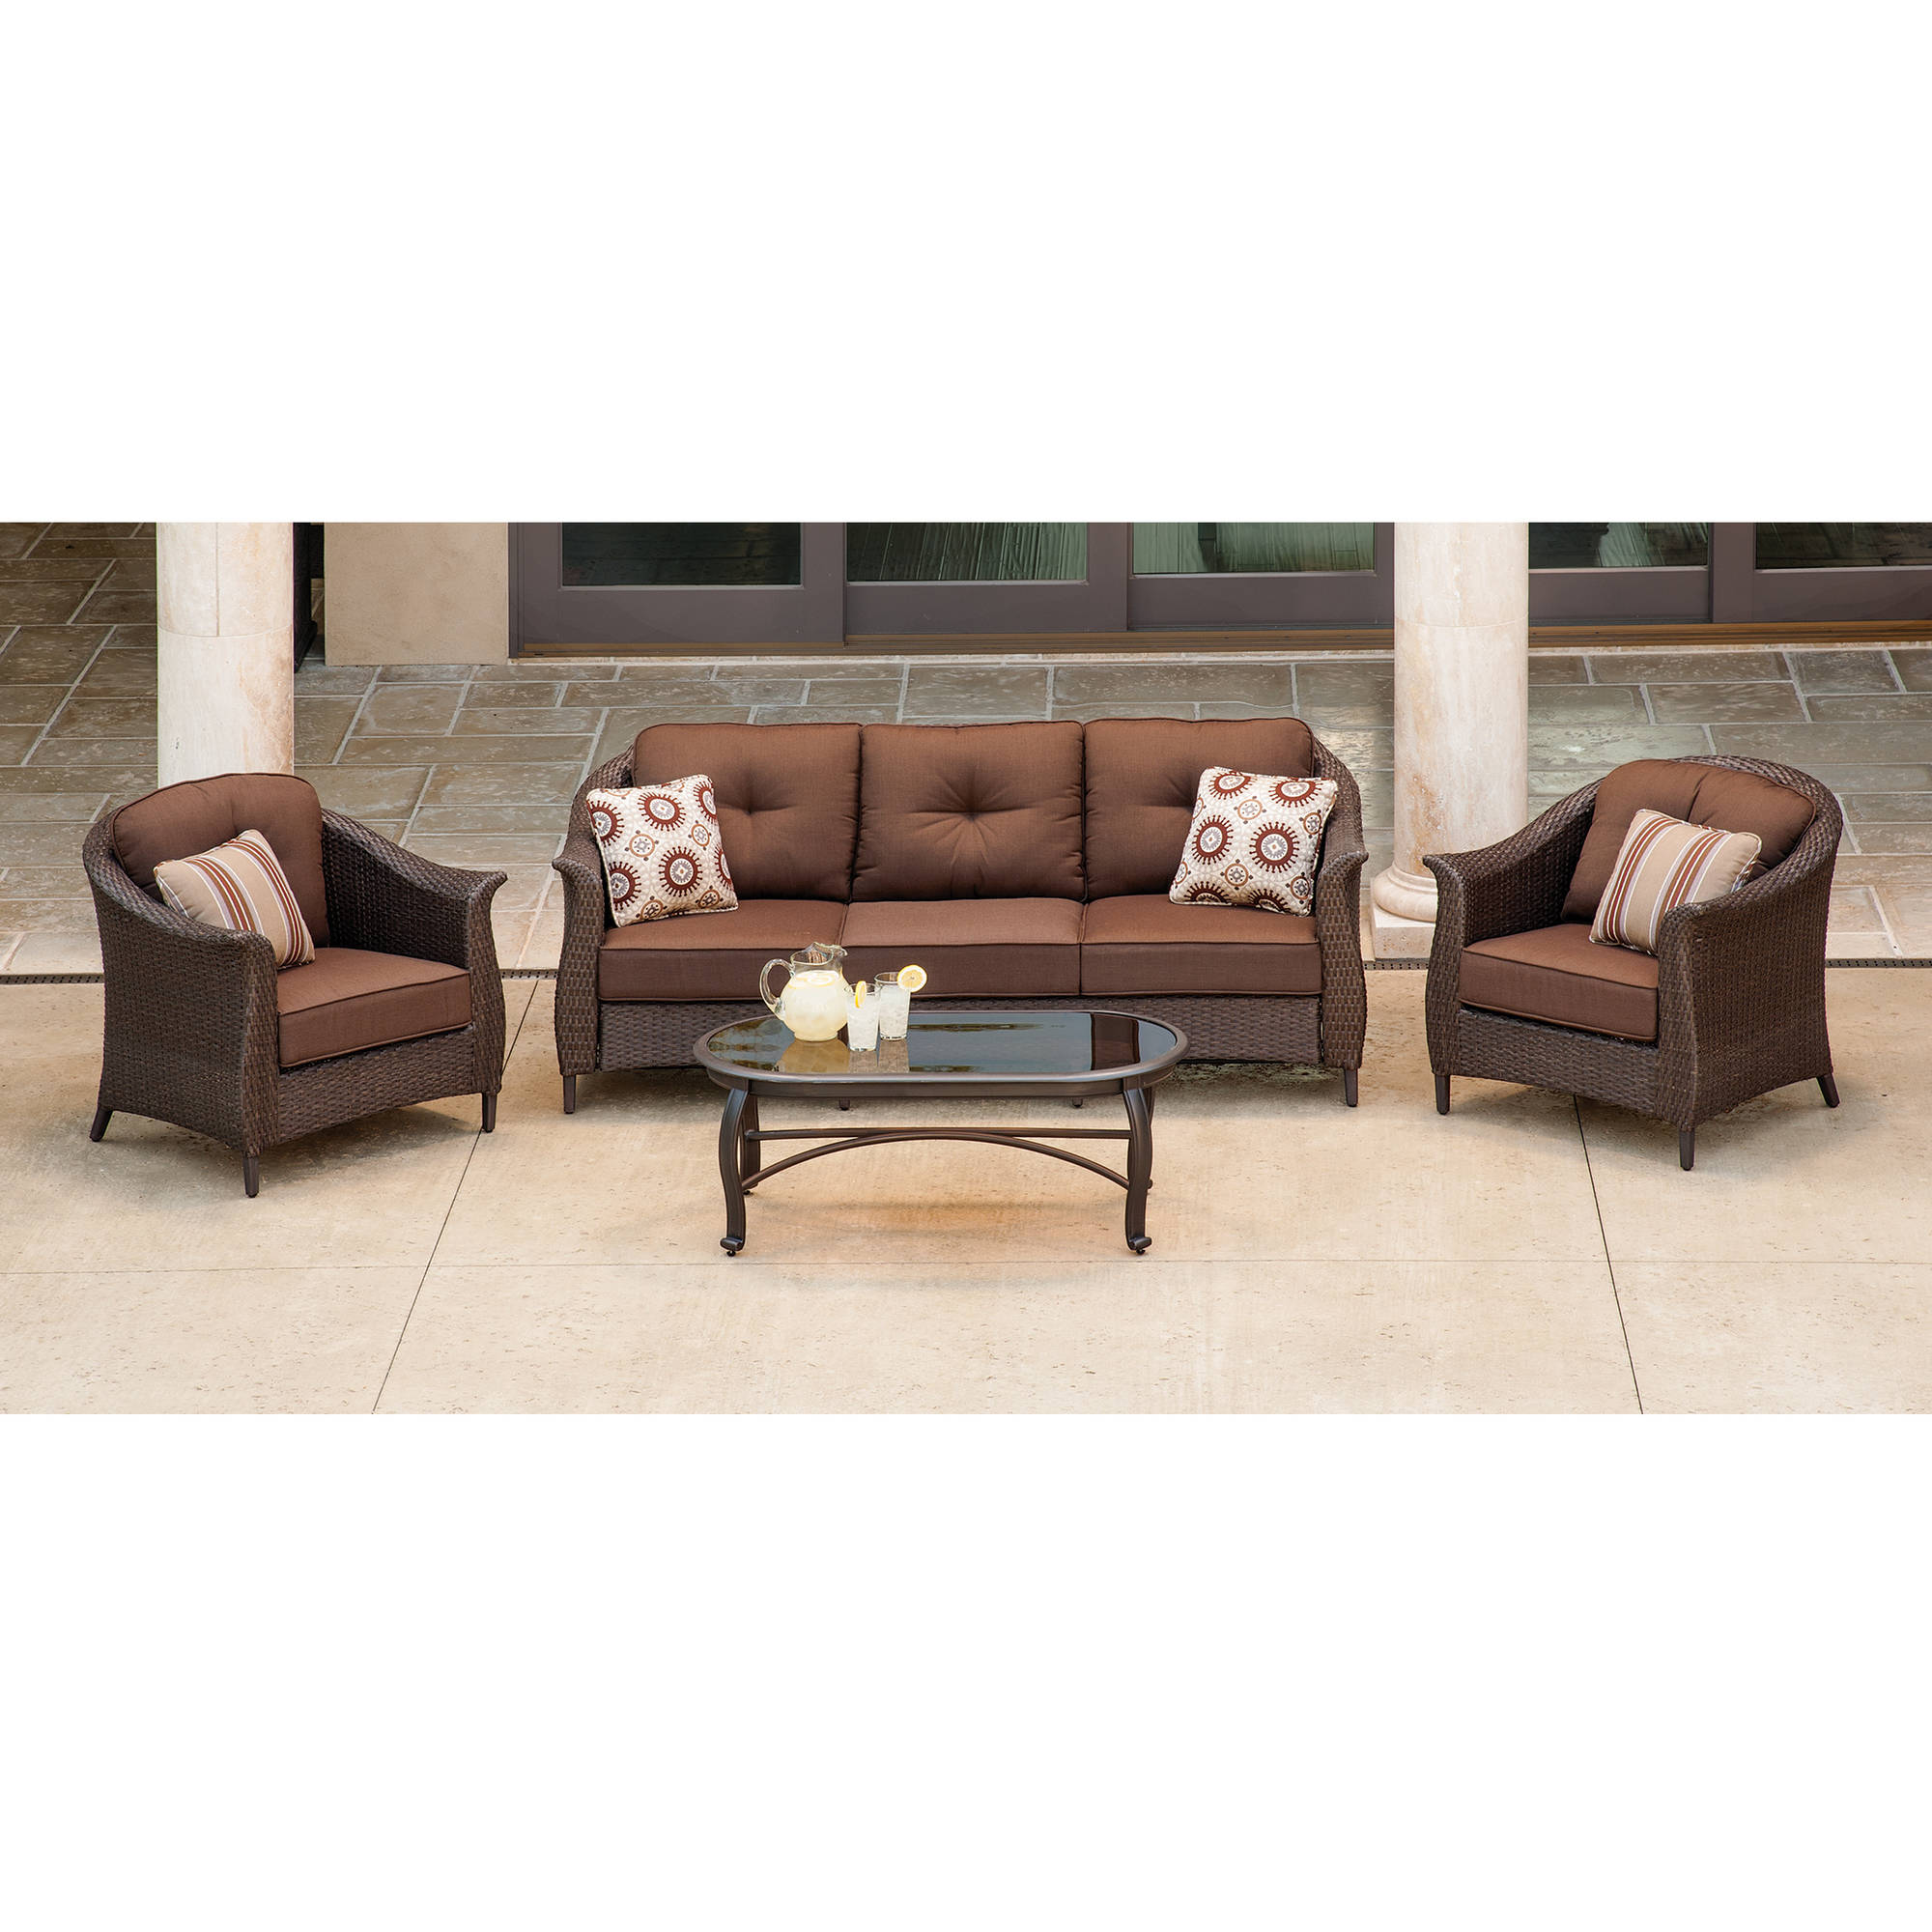 Details about hanover outdoor furniture gramercy 4 piece wicker patio seating set brown